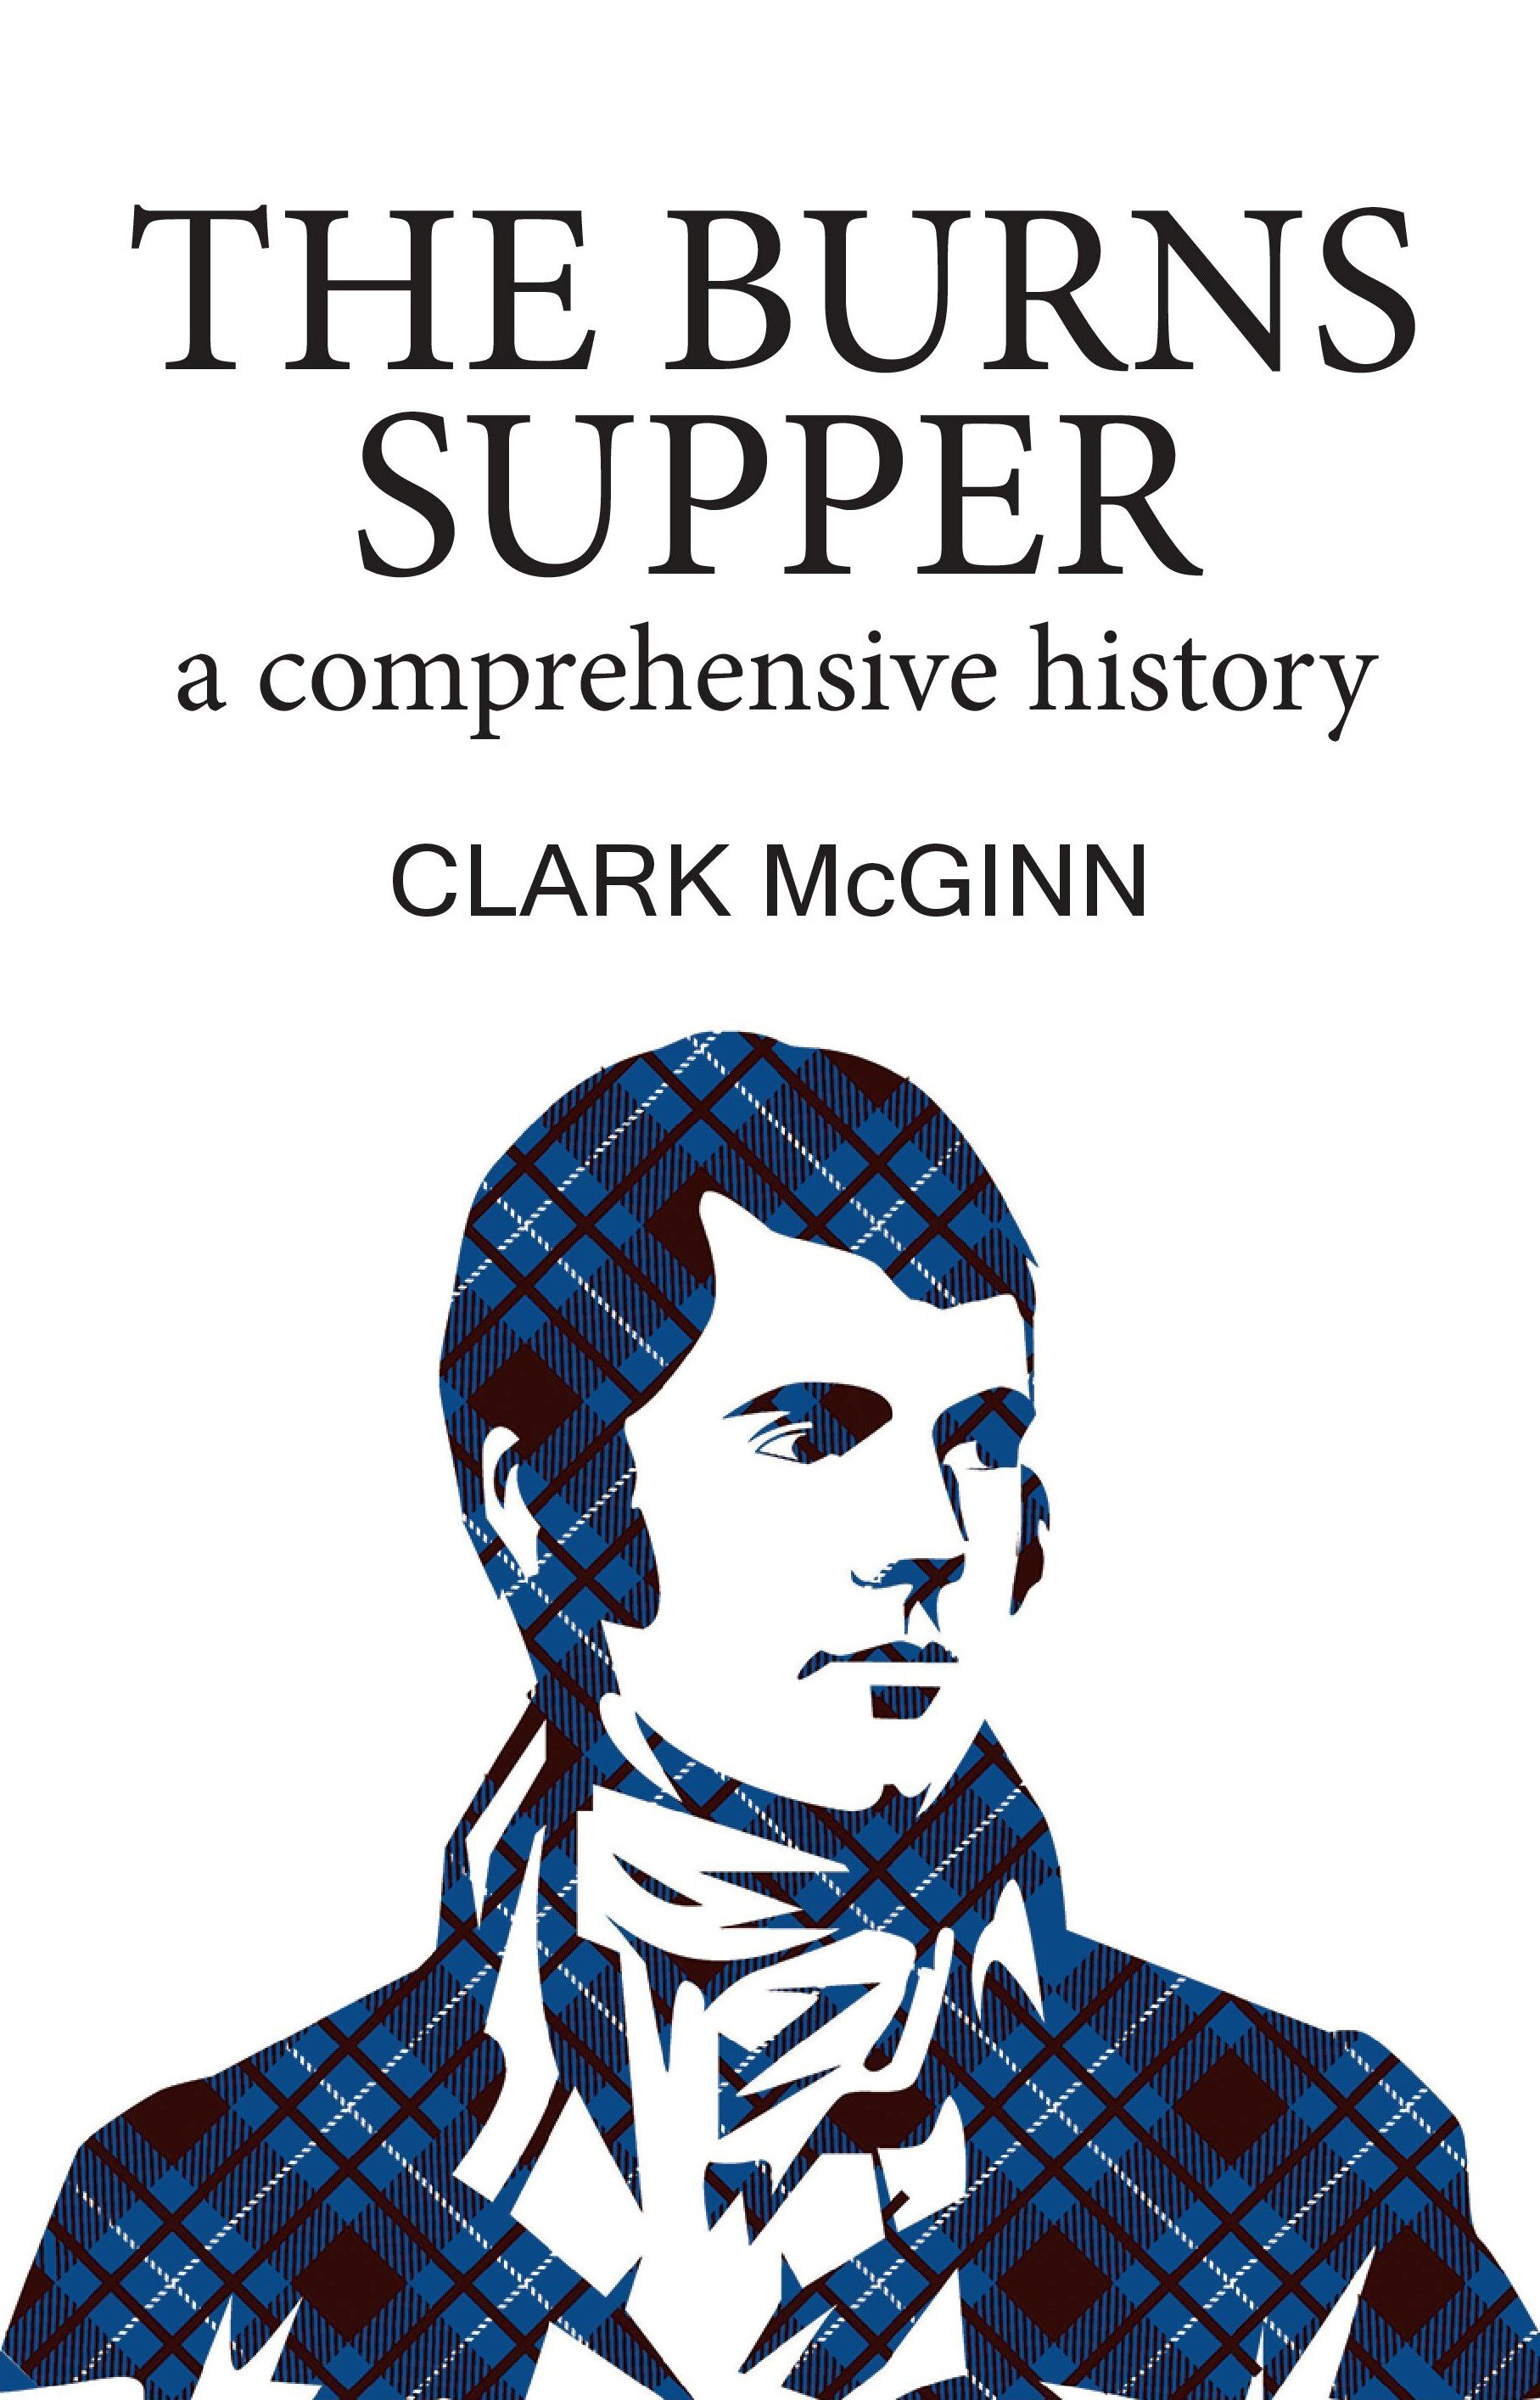 The Burns Supper A Comprehensive History 9781912147786 Luath Press.jpg